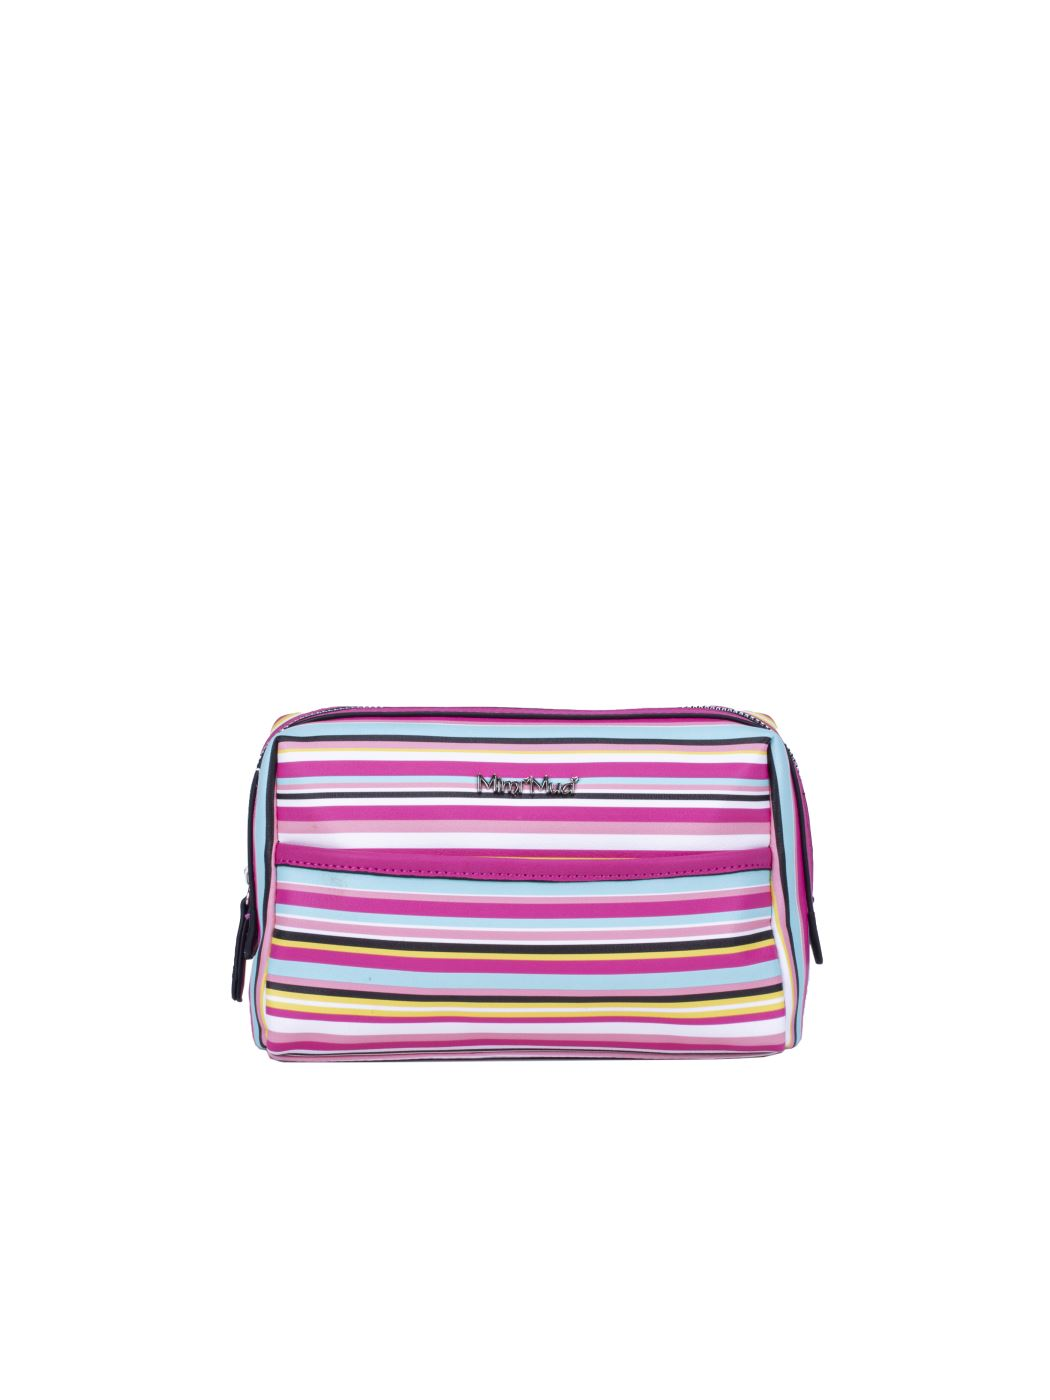 BEAUTY CASE A POCHETTE